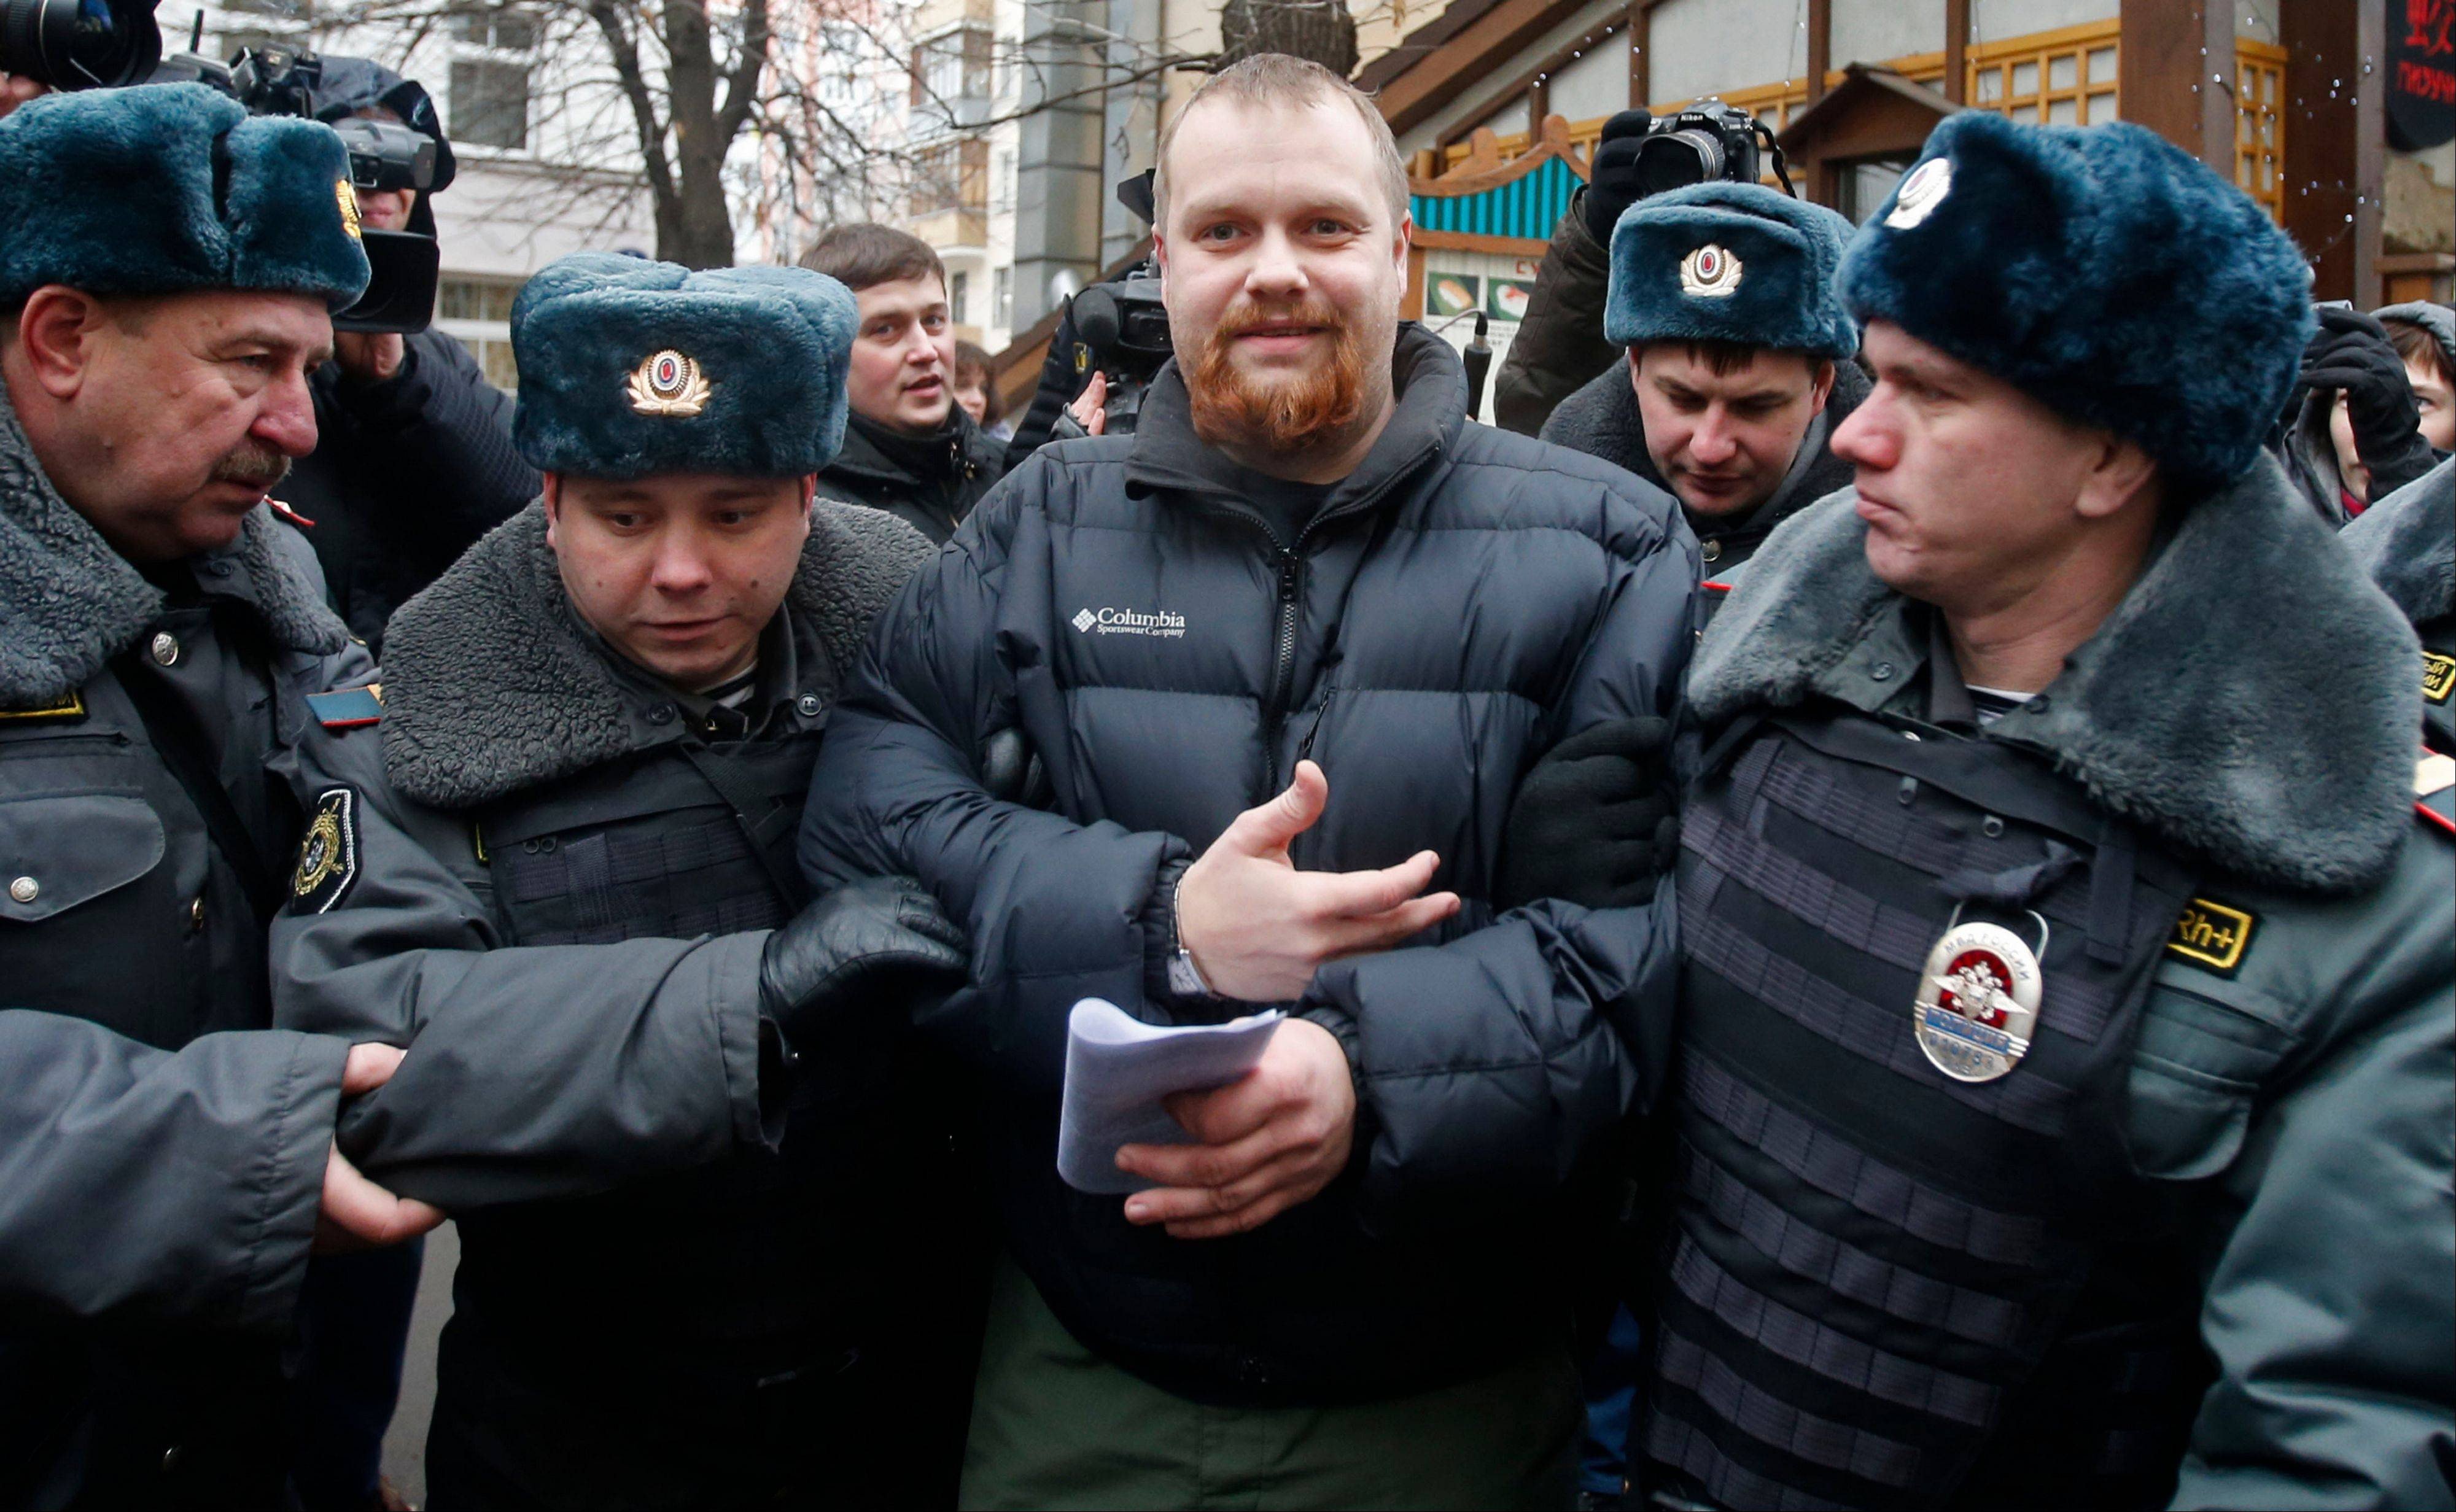 Police officers detain Dmitry Demushkin, the leader of the banned ultranationalist group Slavic Union, outside a court where Russian martial arts champion Rasul Mirzaev was found guilty of involuntary manslaughter, Moscow, Russia, Tuesday, Nov. 27, 2012. Mirzayev was sentenced to two years of house arrest over the death of a man he had punched outside a club.